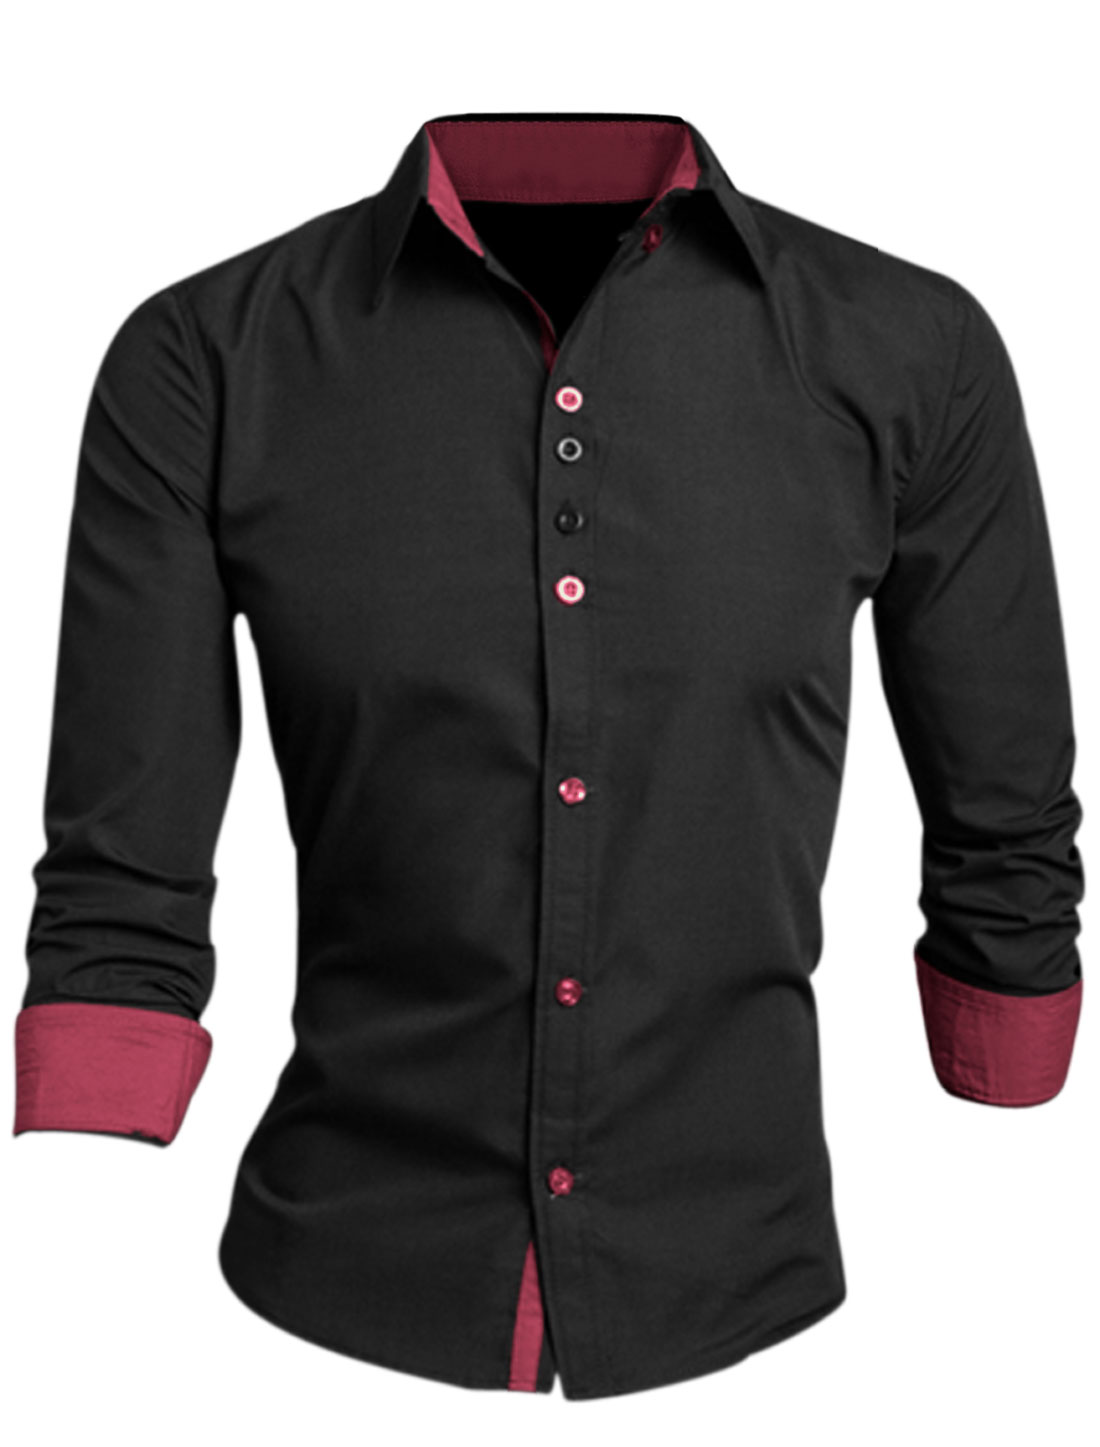 Man Black Long Sleeves Point Collar Single Breasted Button Cuffs Shirt M